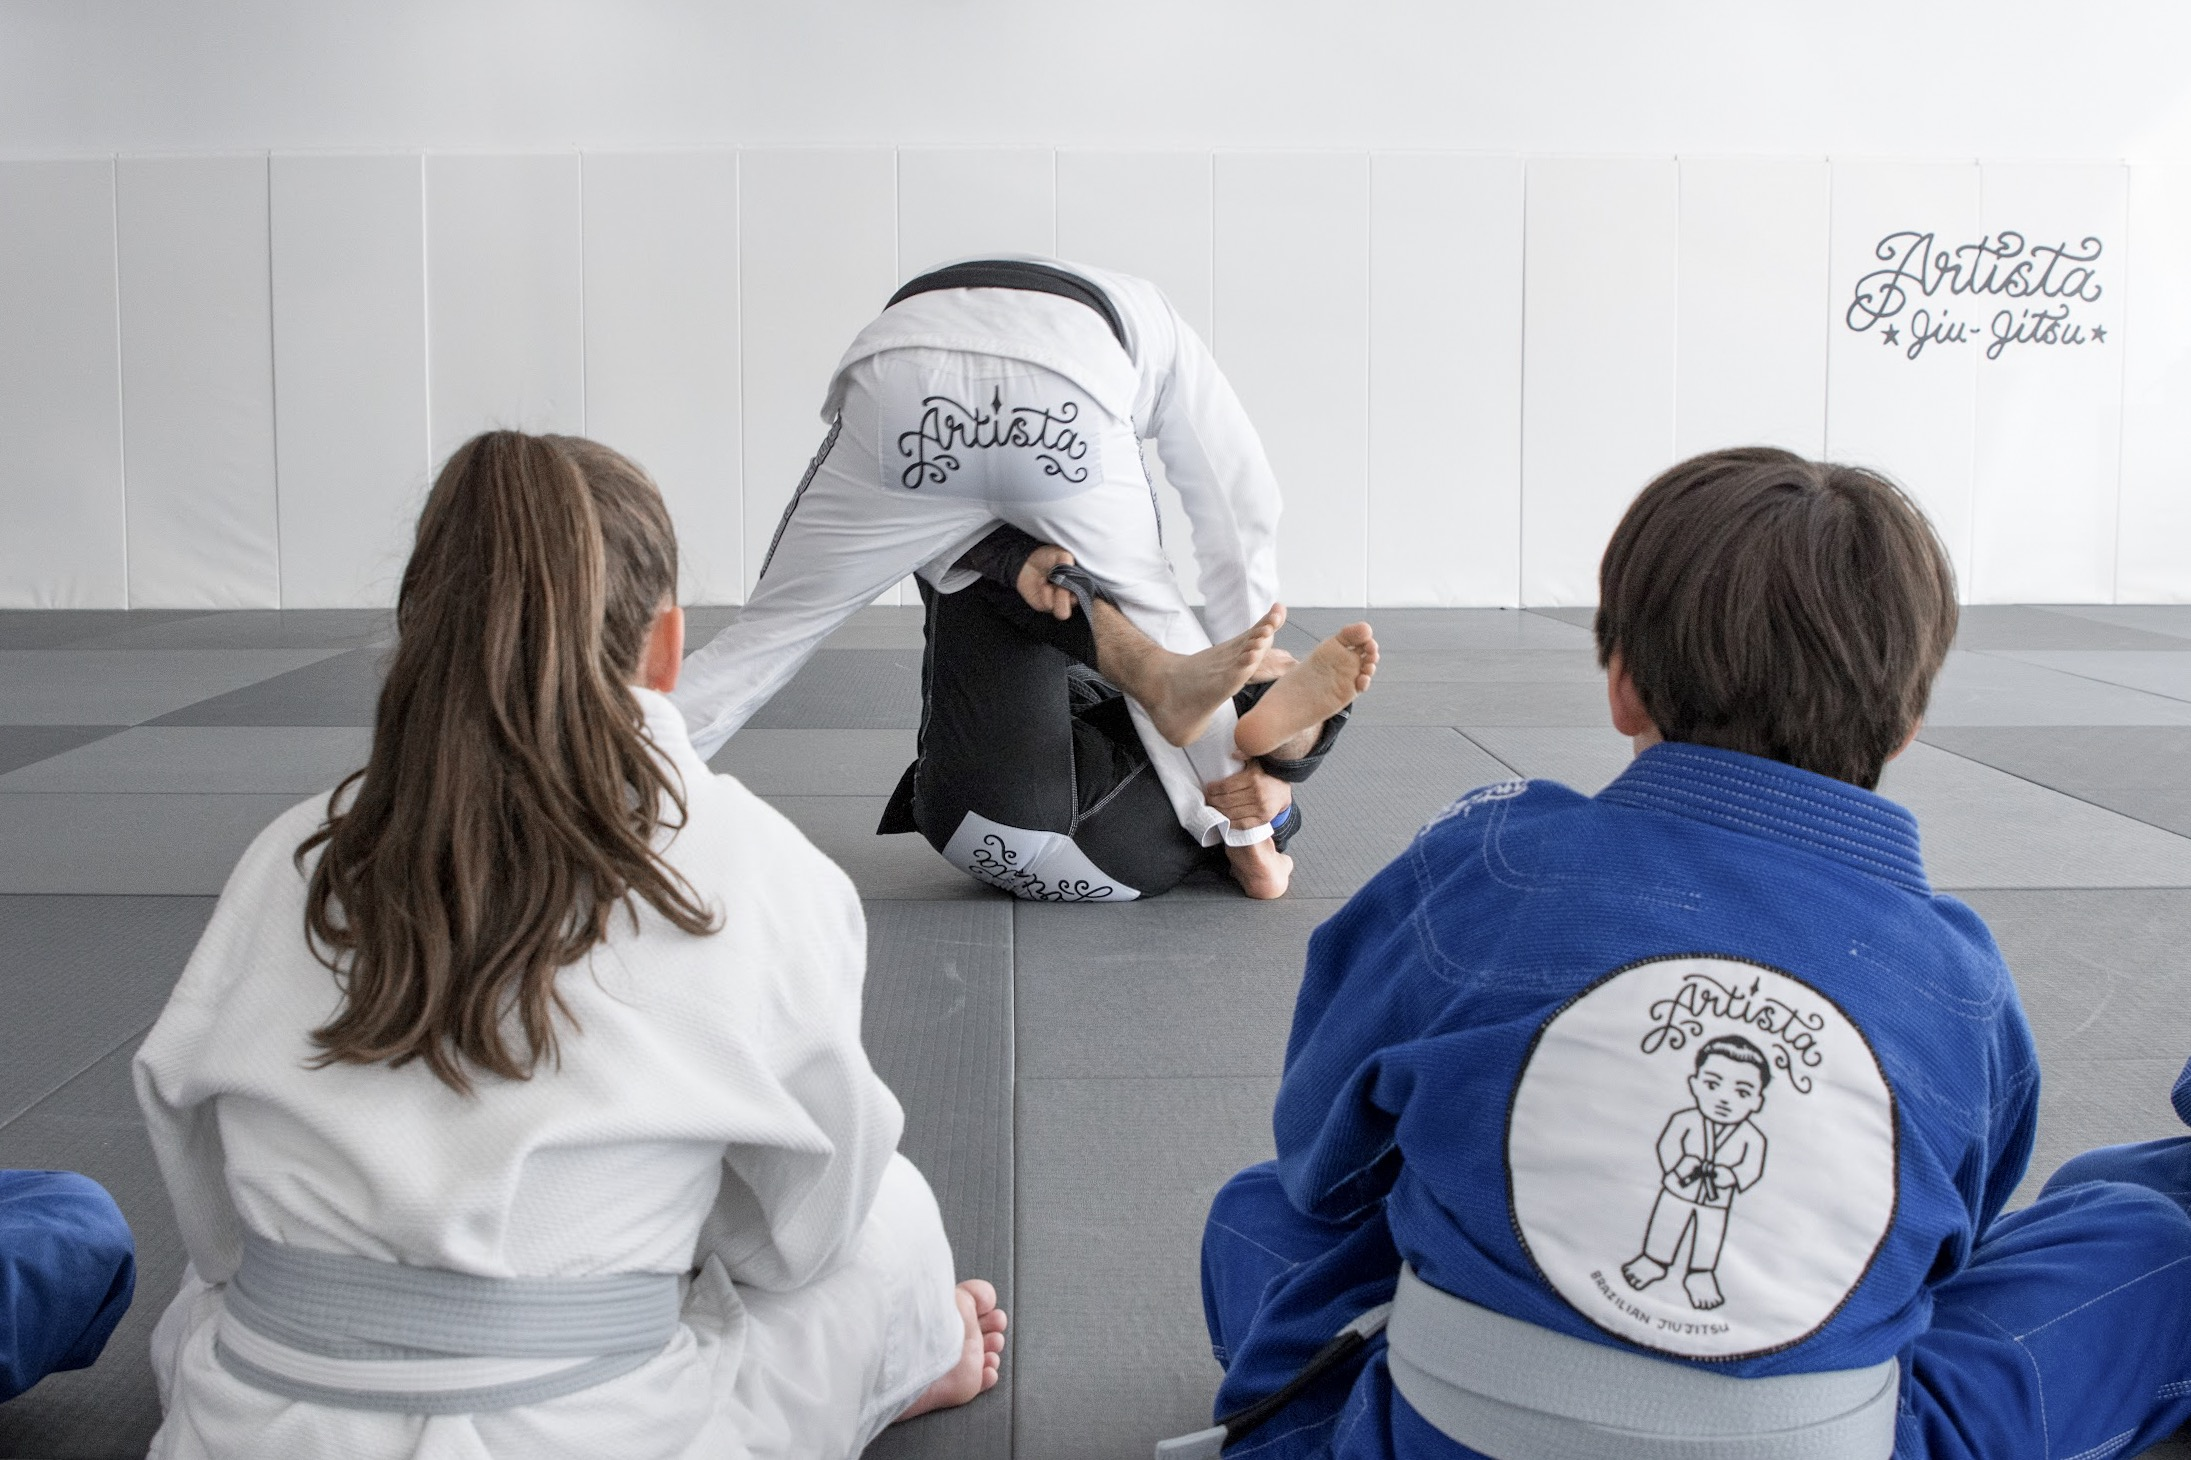 - BIG ARTISTS ADVANCEDKids Advanced class is focused more on competition Jiu-Jitsu and will teach your children advanced Jiu-Jitsu as well as competition rules, points and more. Entrance to this class requires instructor approval.